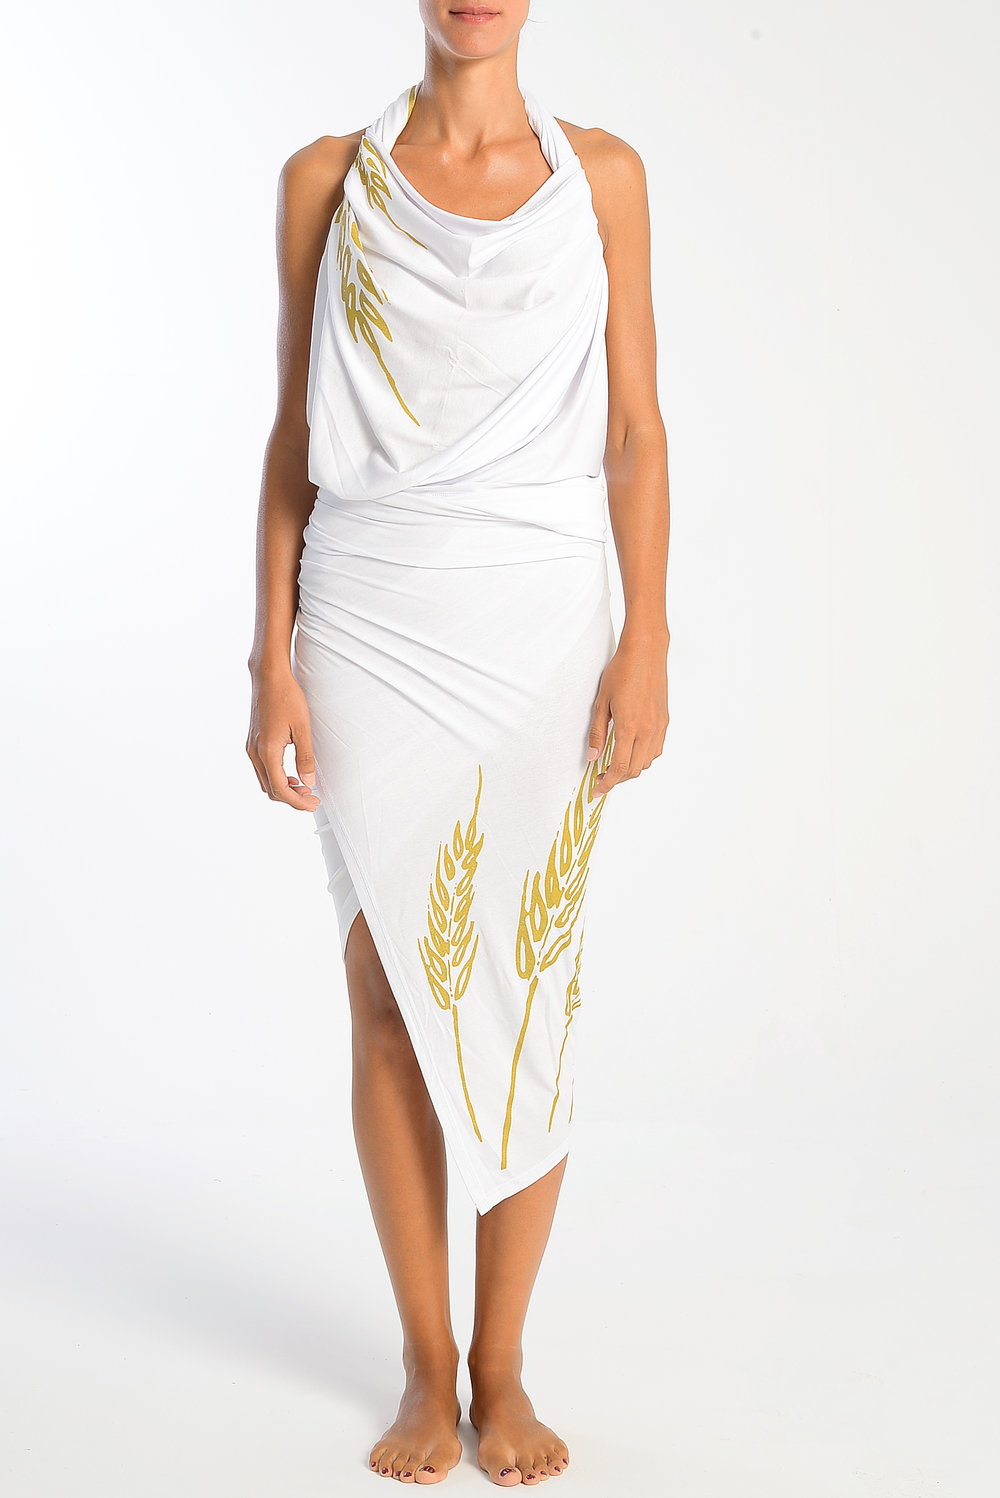 demetra-golden-on-white-viscose-wrap-as-twisted-maxi-dress-front.jpg